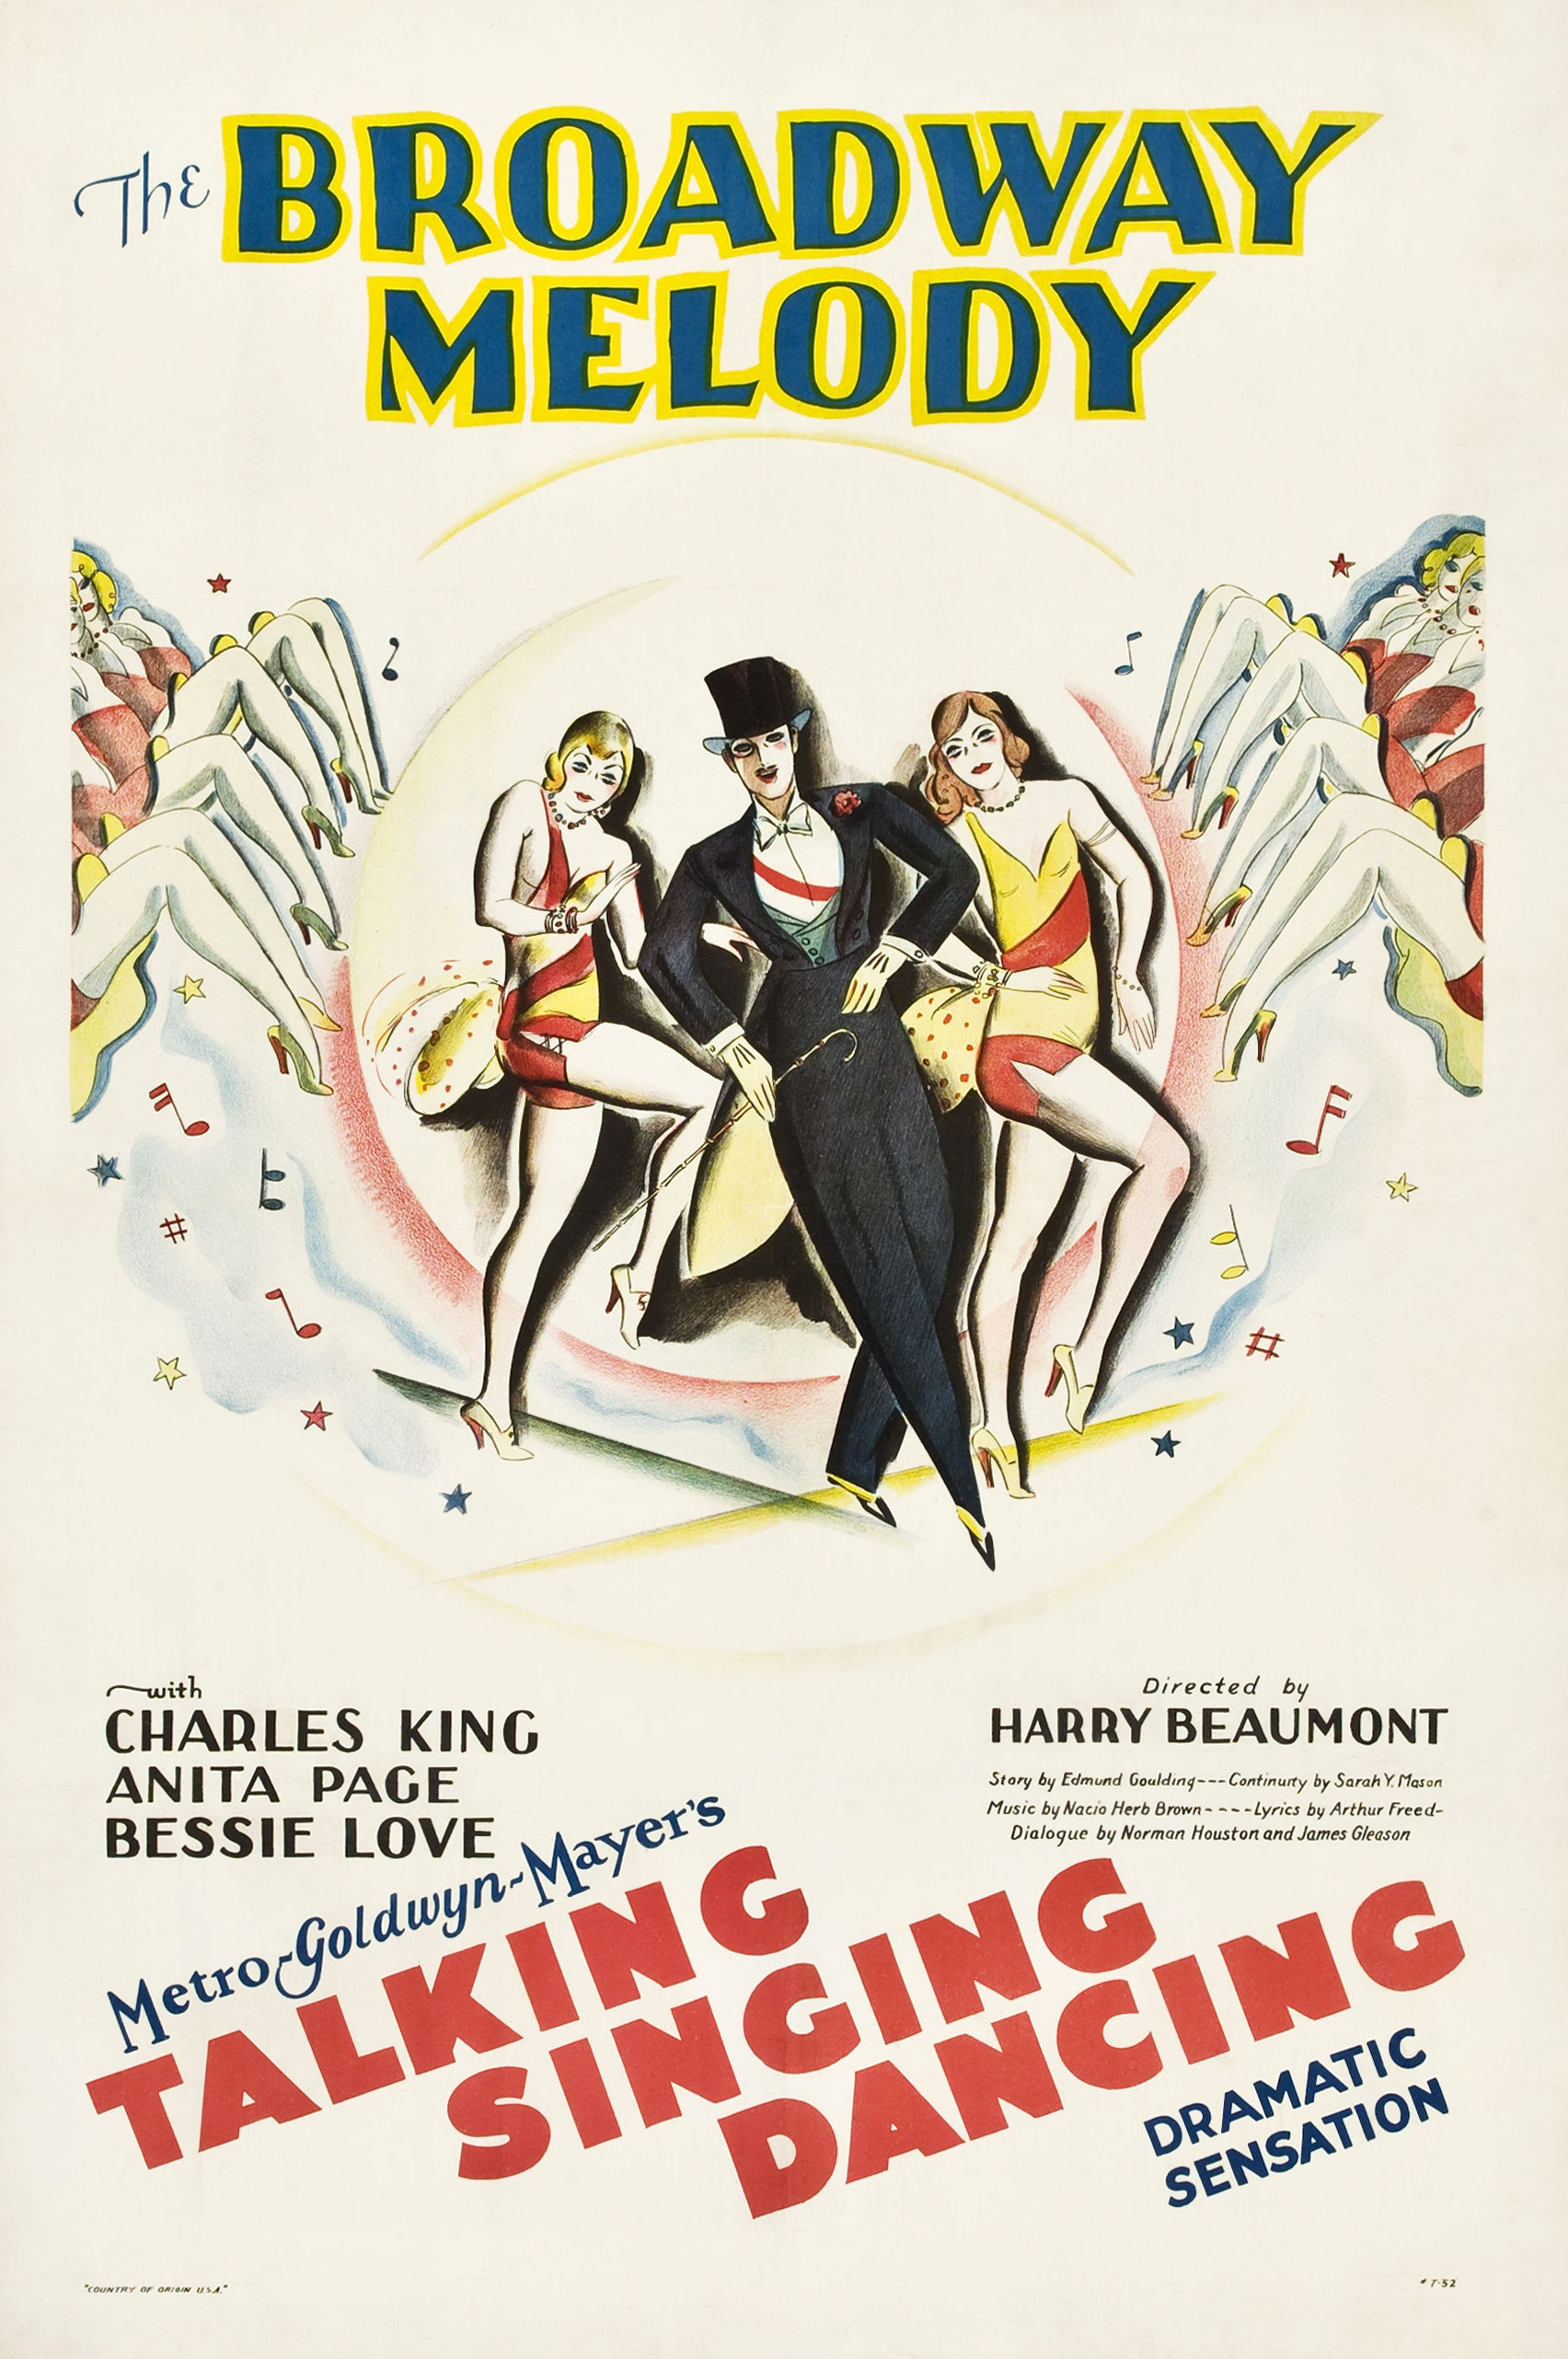 The Broadway Melody - Wikipedia